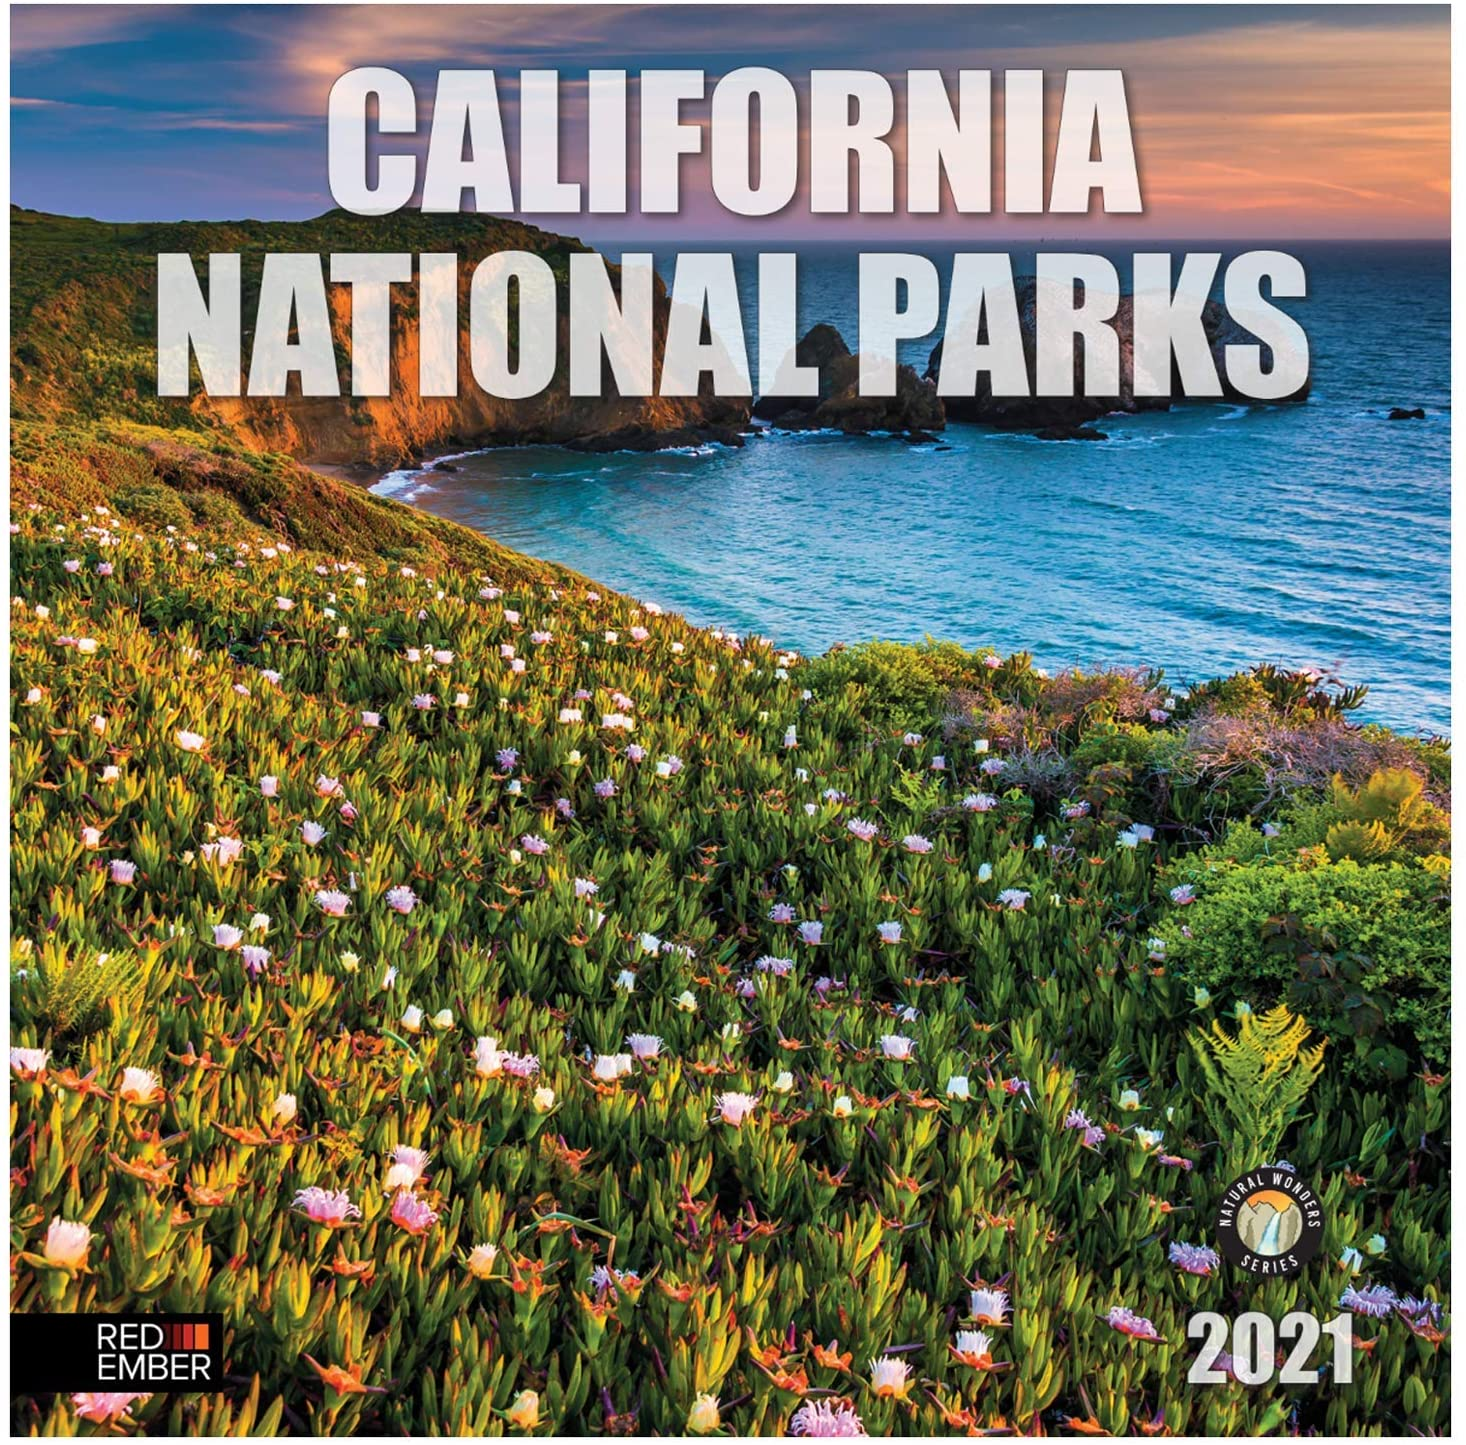 California National Parks - 2021 Wall Calendars by Red Ember Press - 12